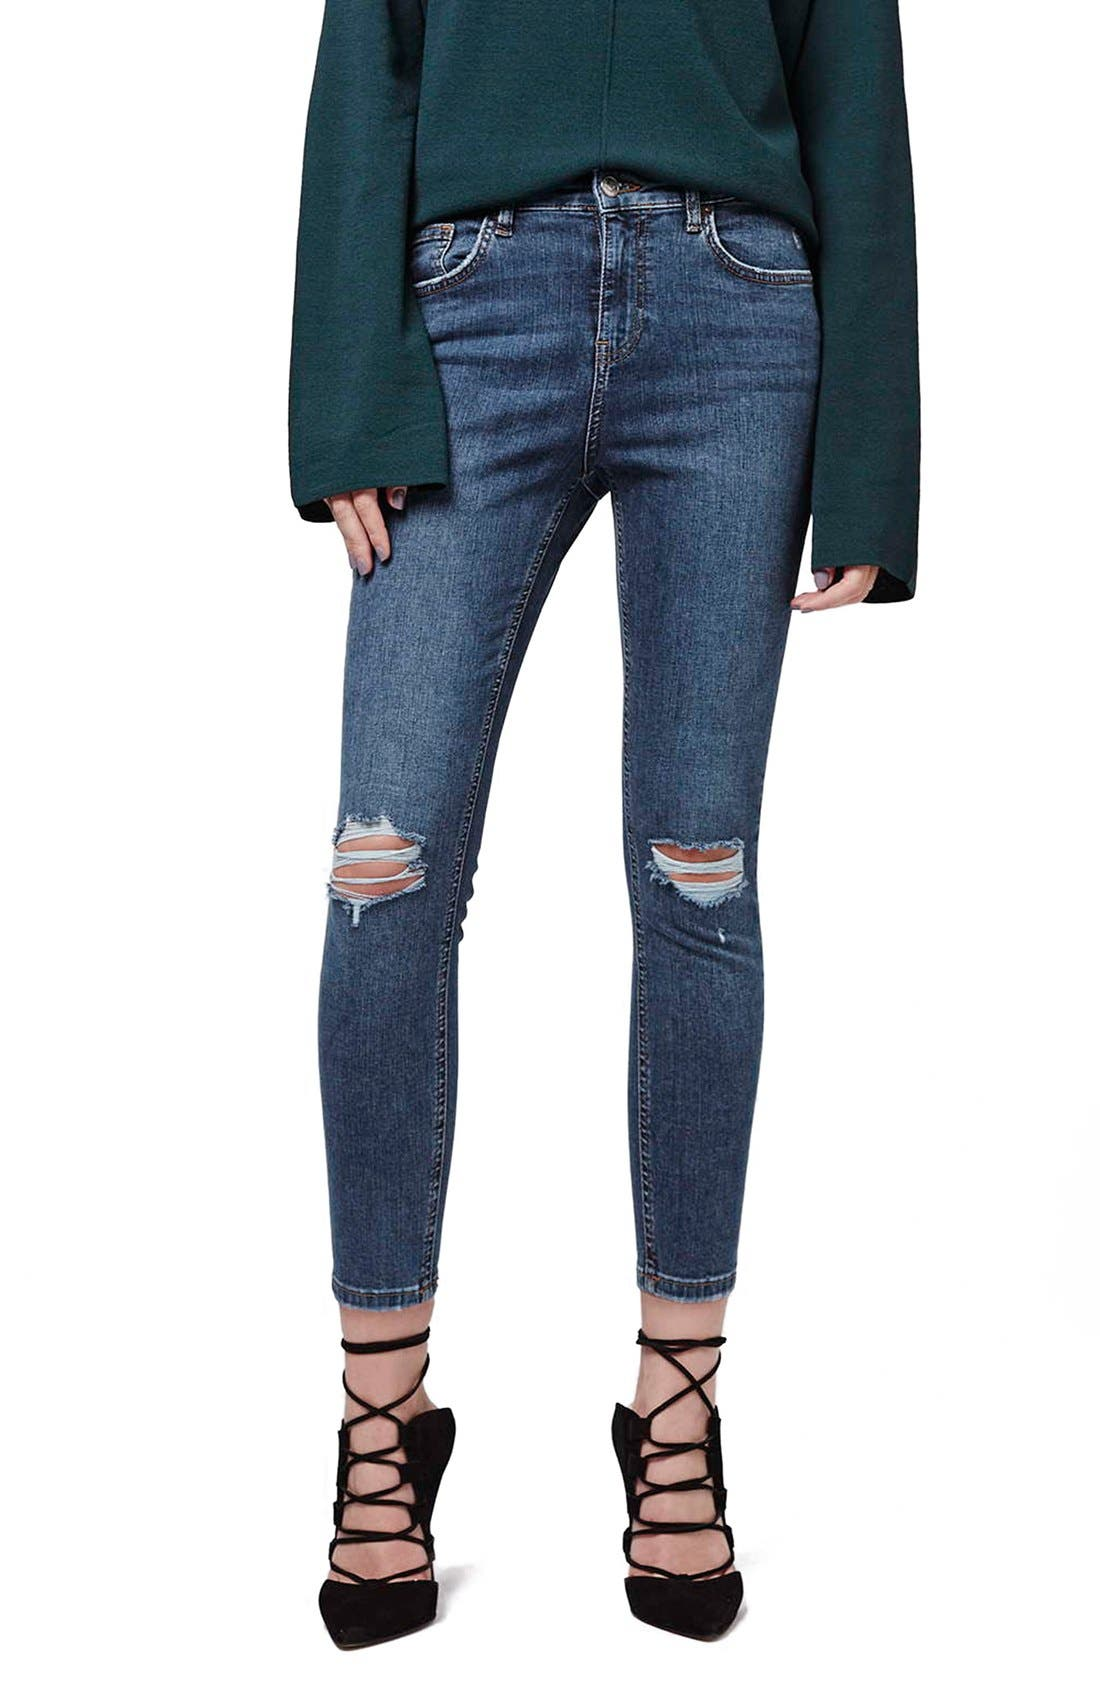 Alternate Image 1 Selected - Topshop Moto 'Jamie' Ripped Skinny Ankle Jeans (Petite)